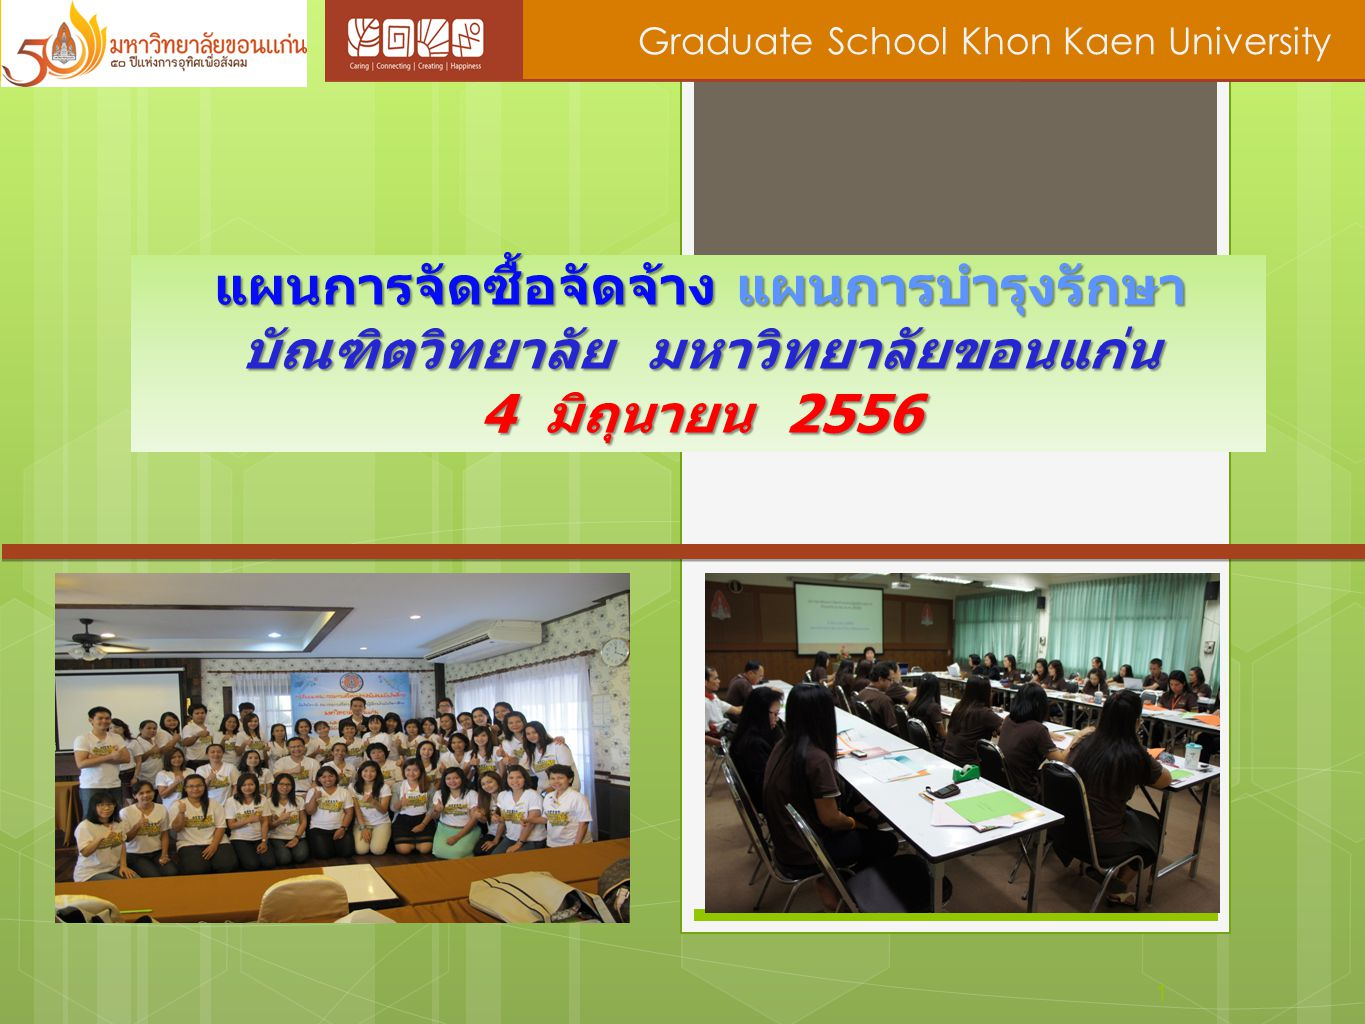 Graduate School Khon Kaen University